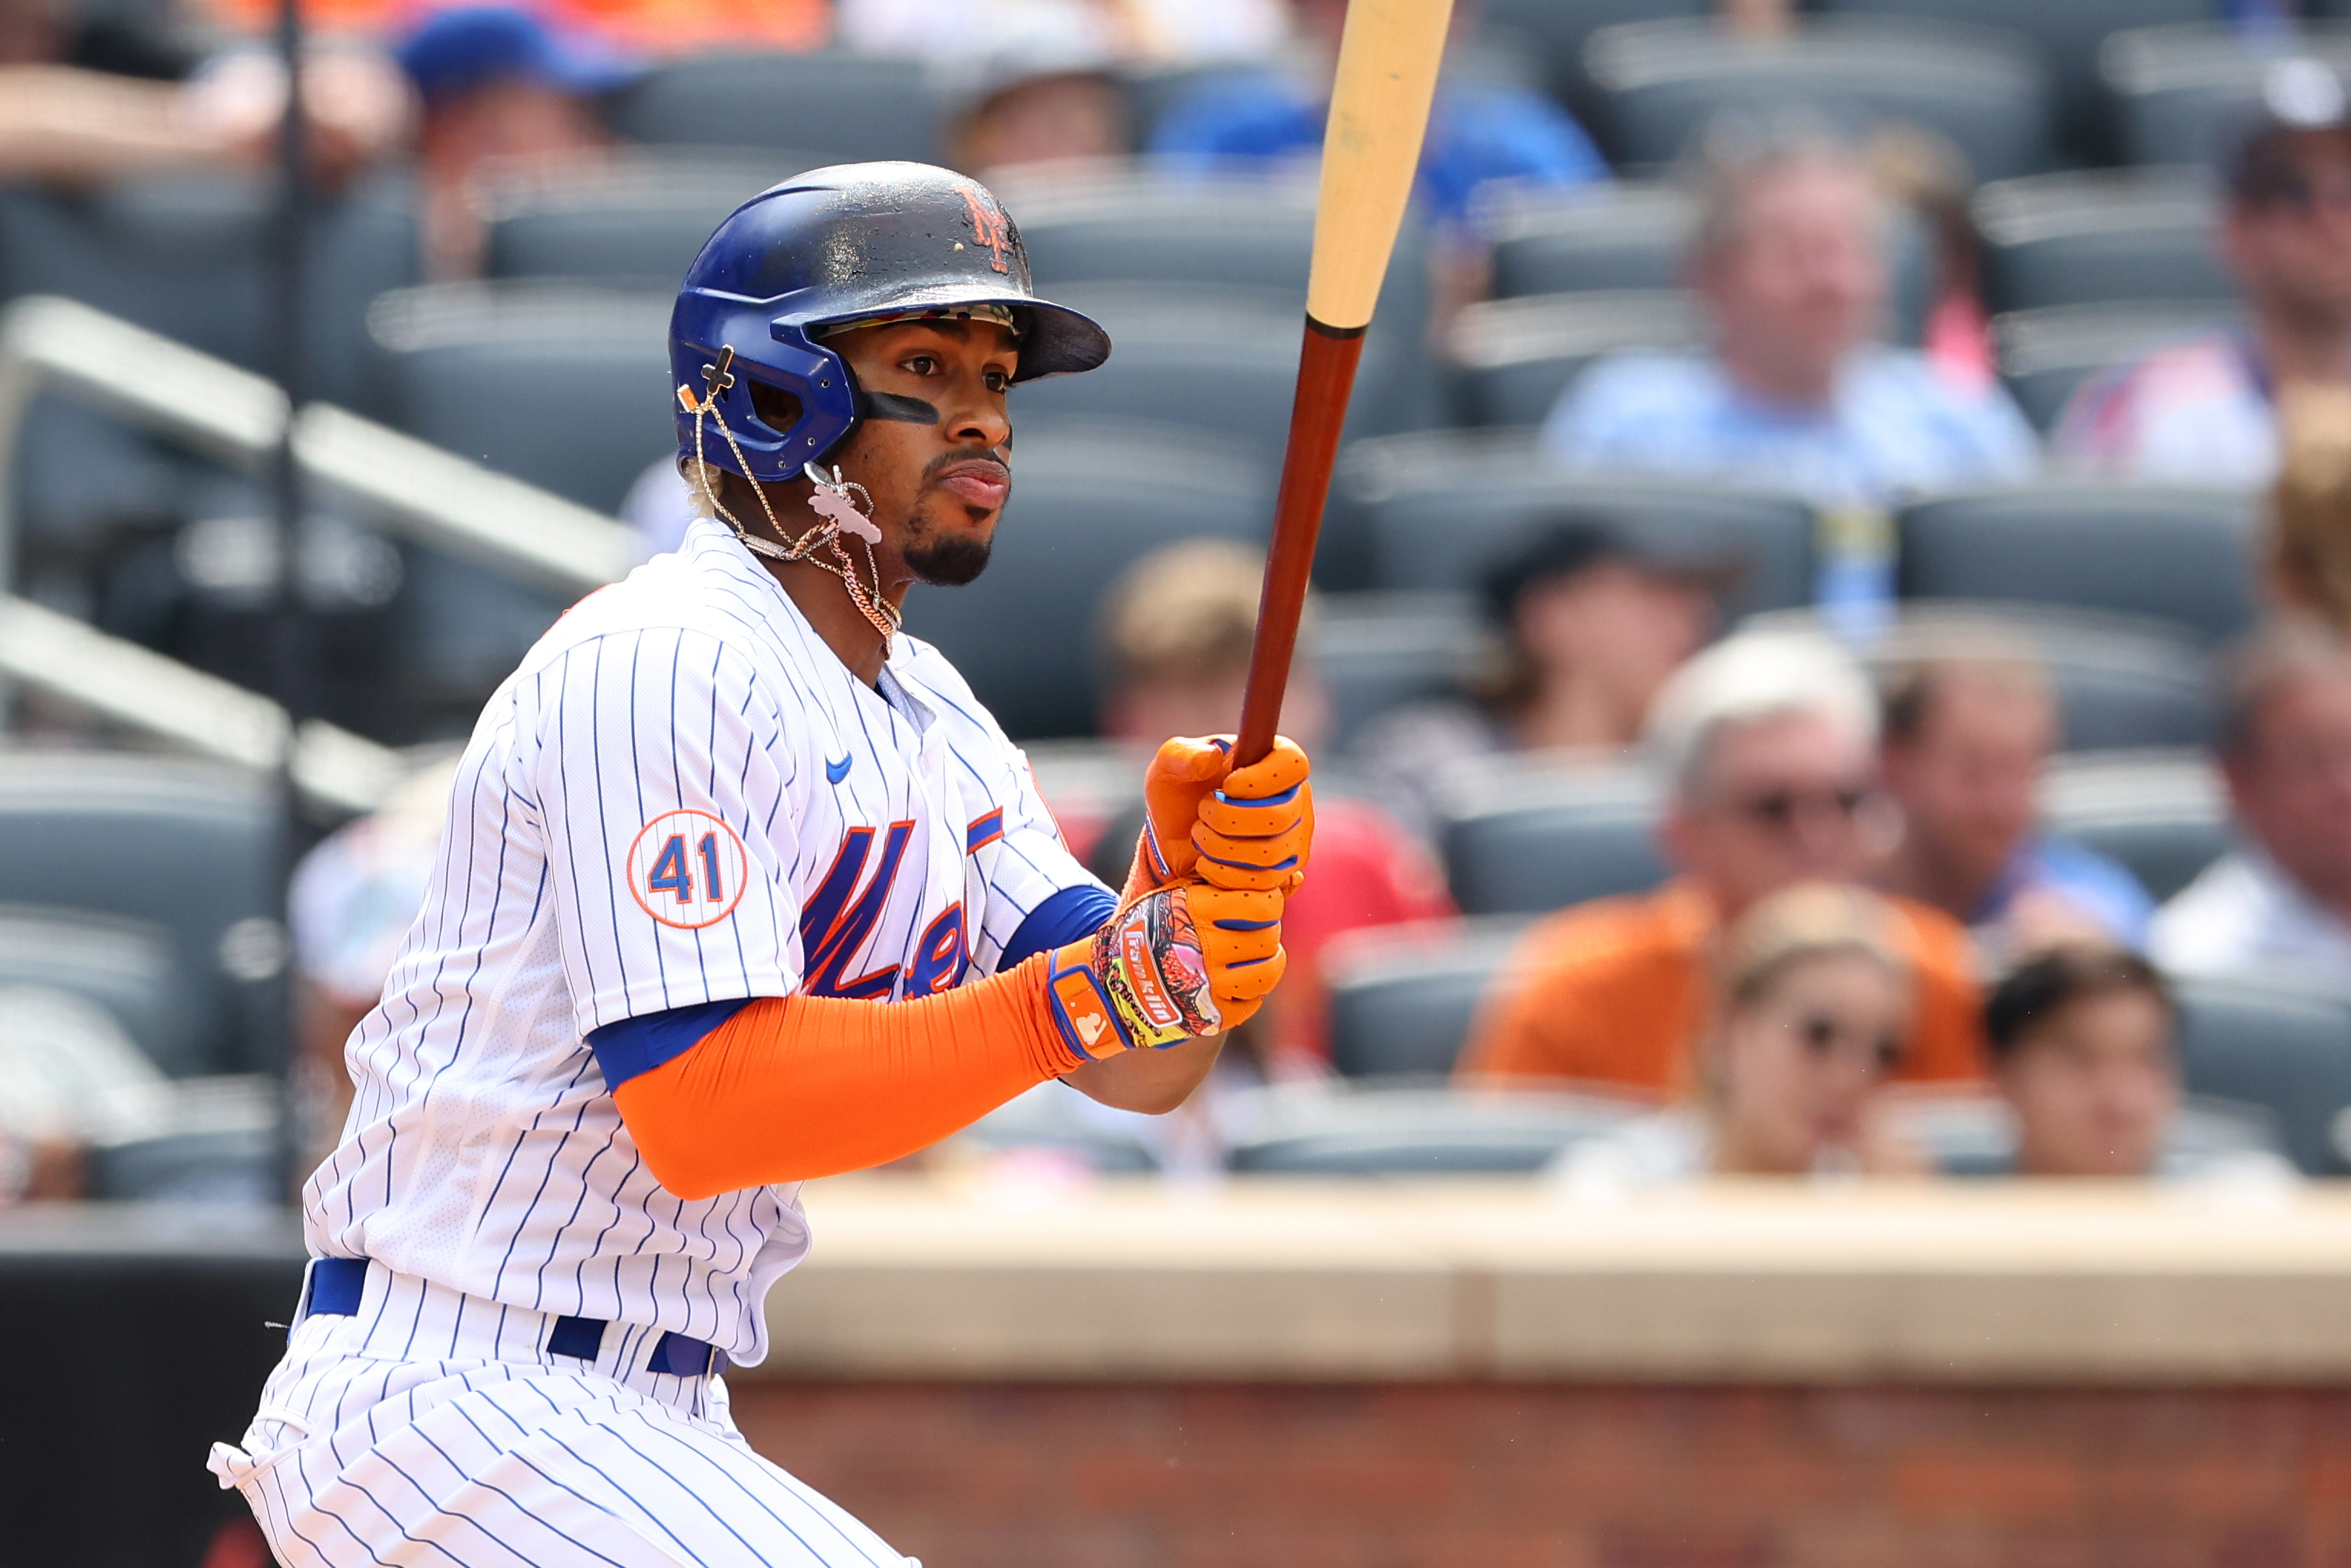 Francisco Lindor #12 of the New York Mets in action against the Pittsburgh Pirates during a game at Citi Field on July 11, 2021 in New York City.